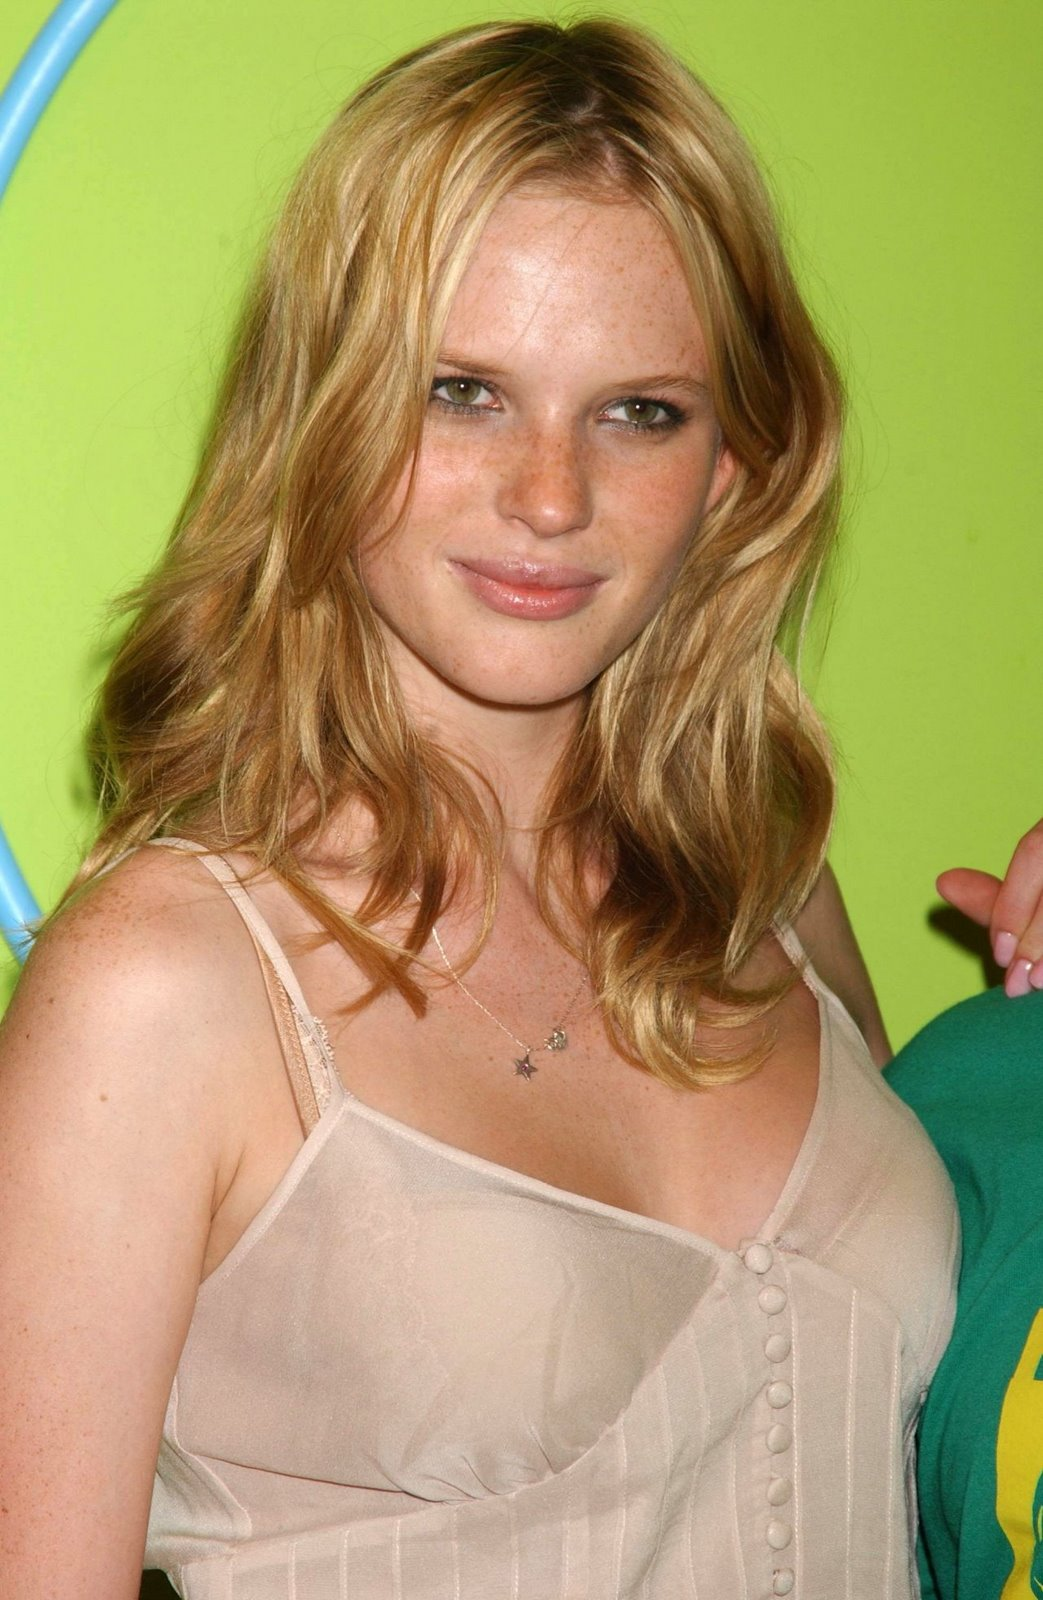 Anne Vyalitsyna Hot Photo